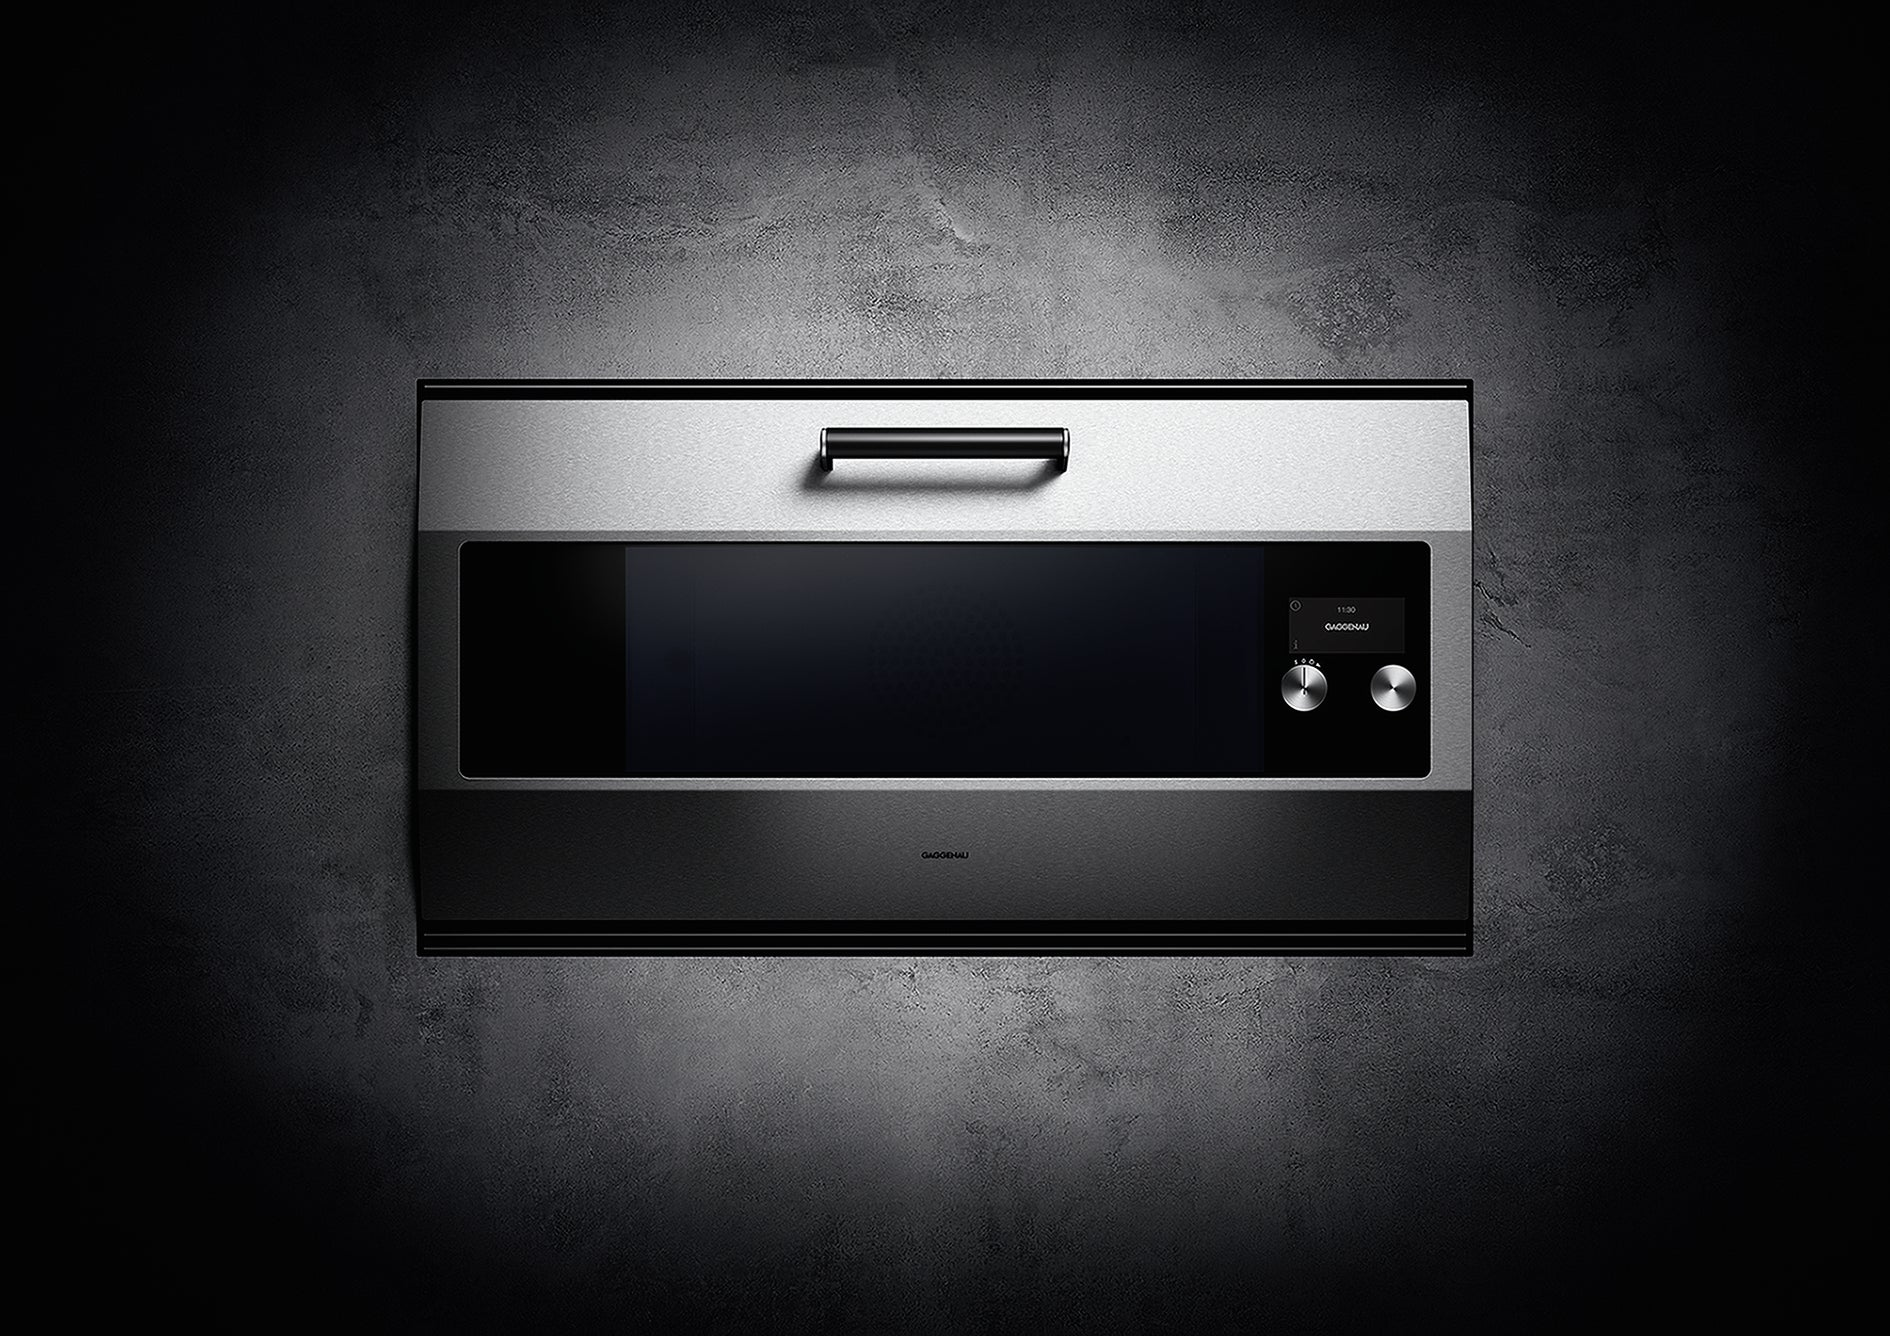 Buy the new luxury Gaggenau oven EB 333 Series from Abitalia South Coast based in the UK, Poole.